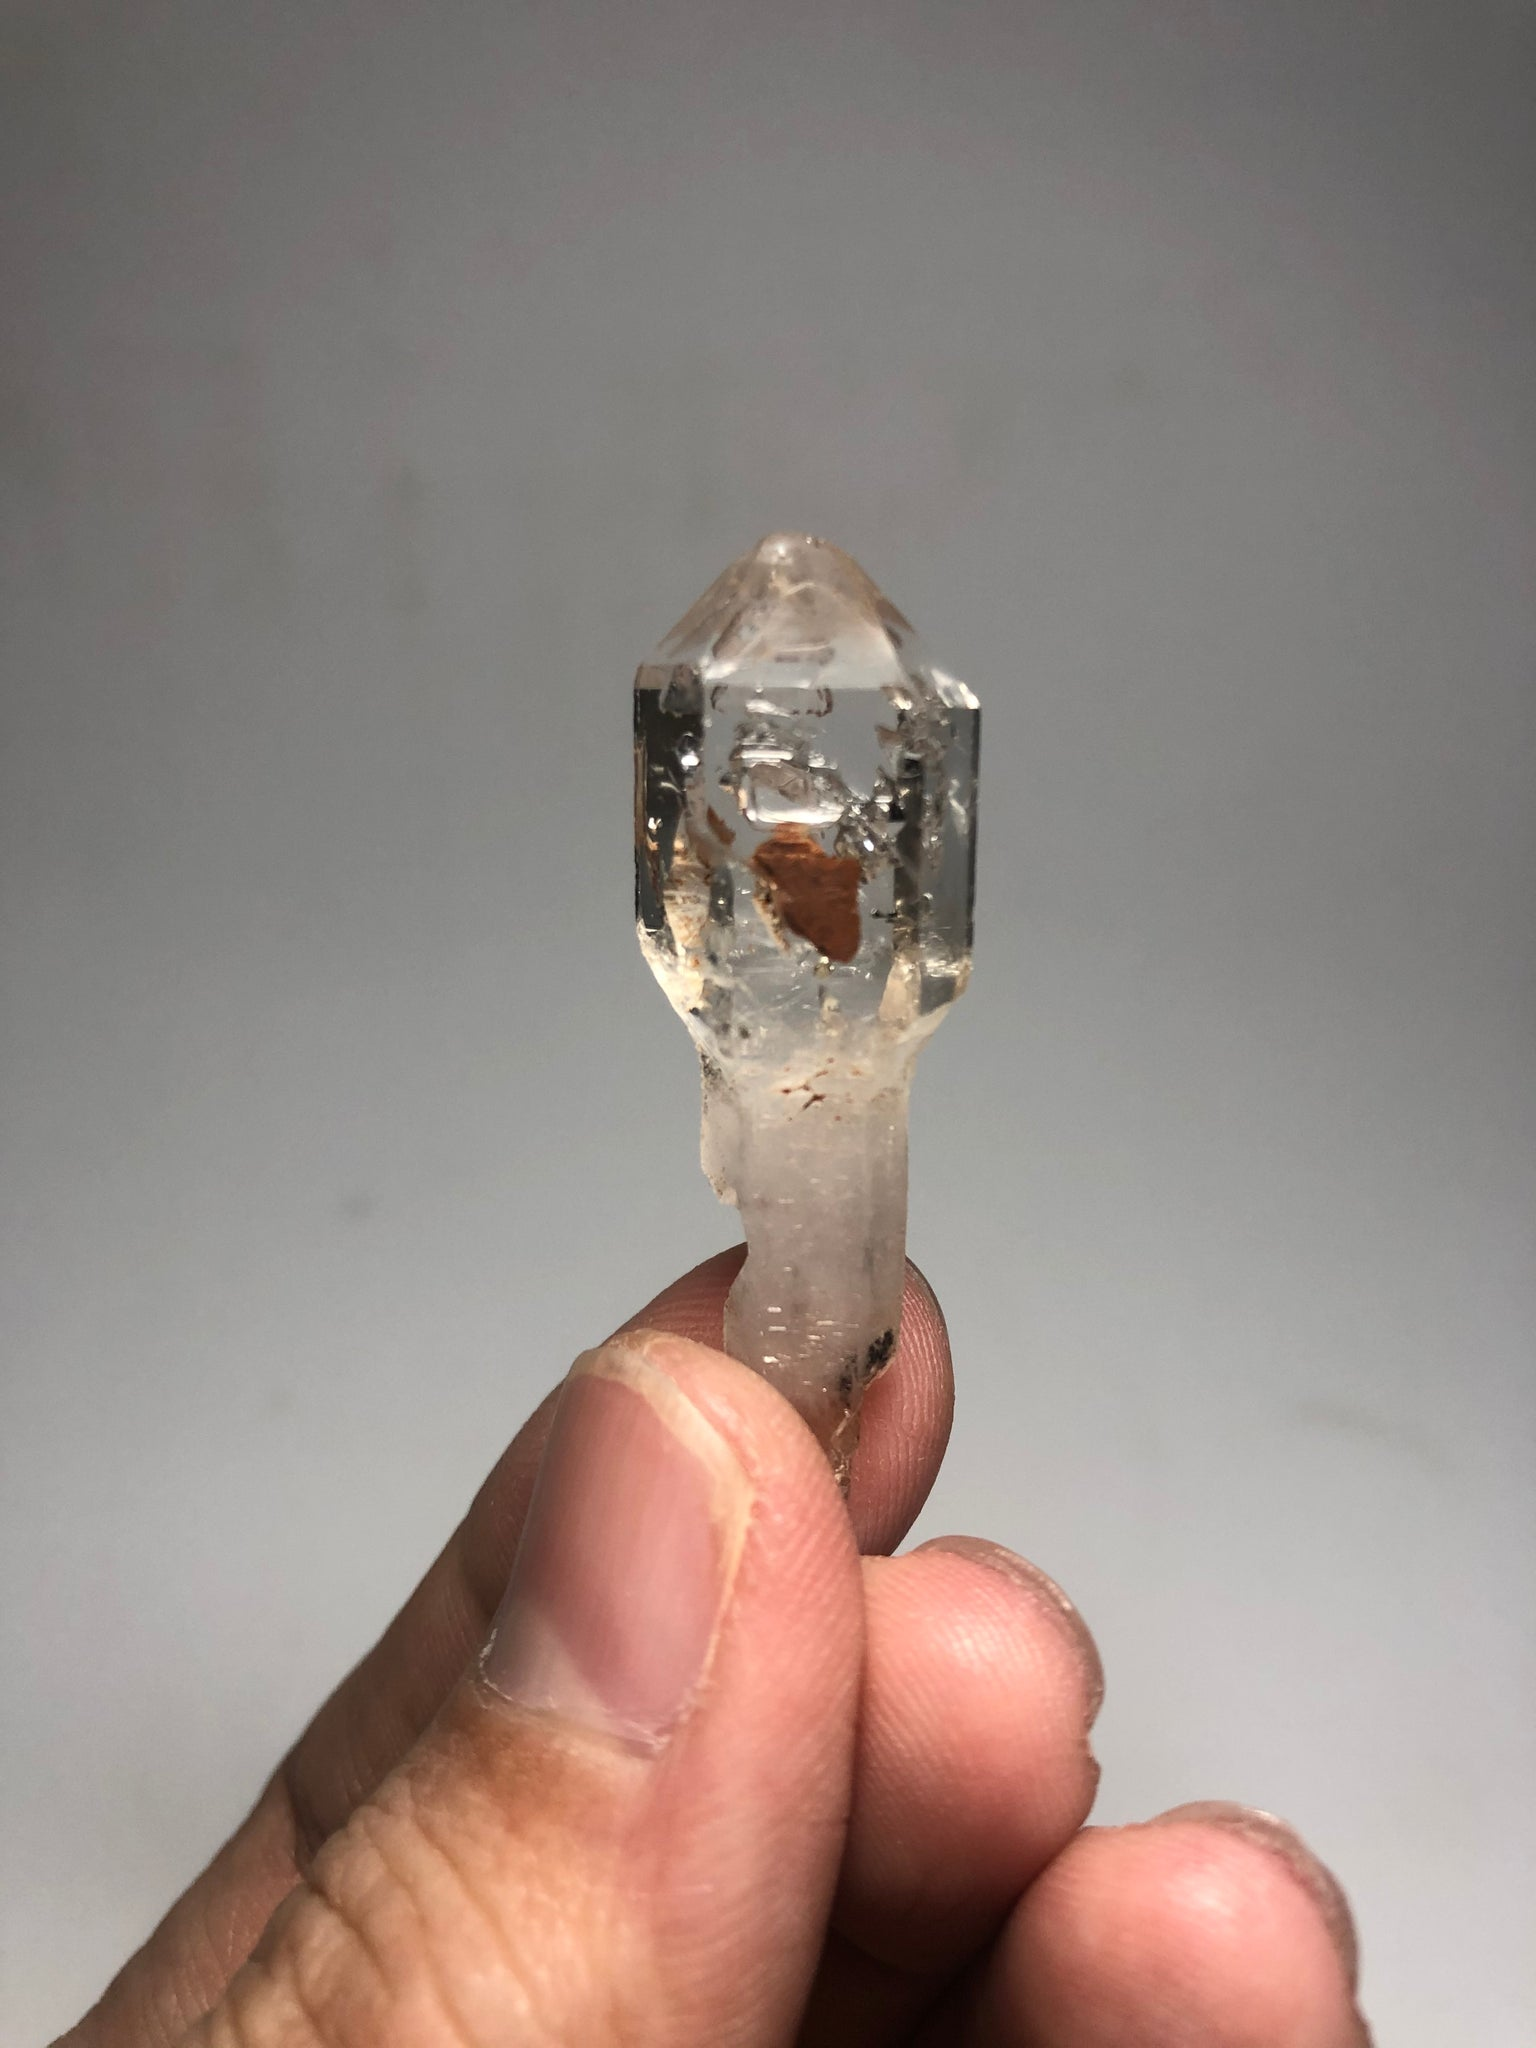 Clear Quartz Scepter Double Terminated with Hematite Inclusion 8g